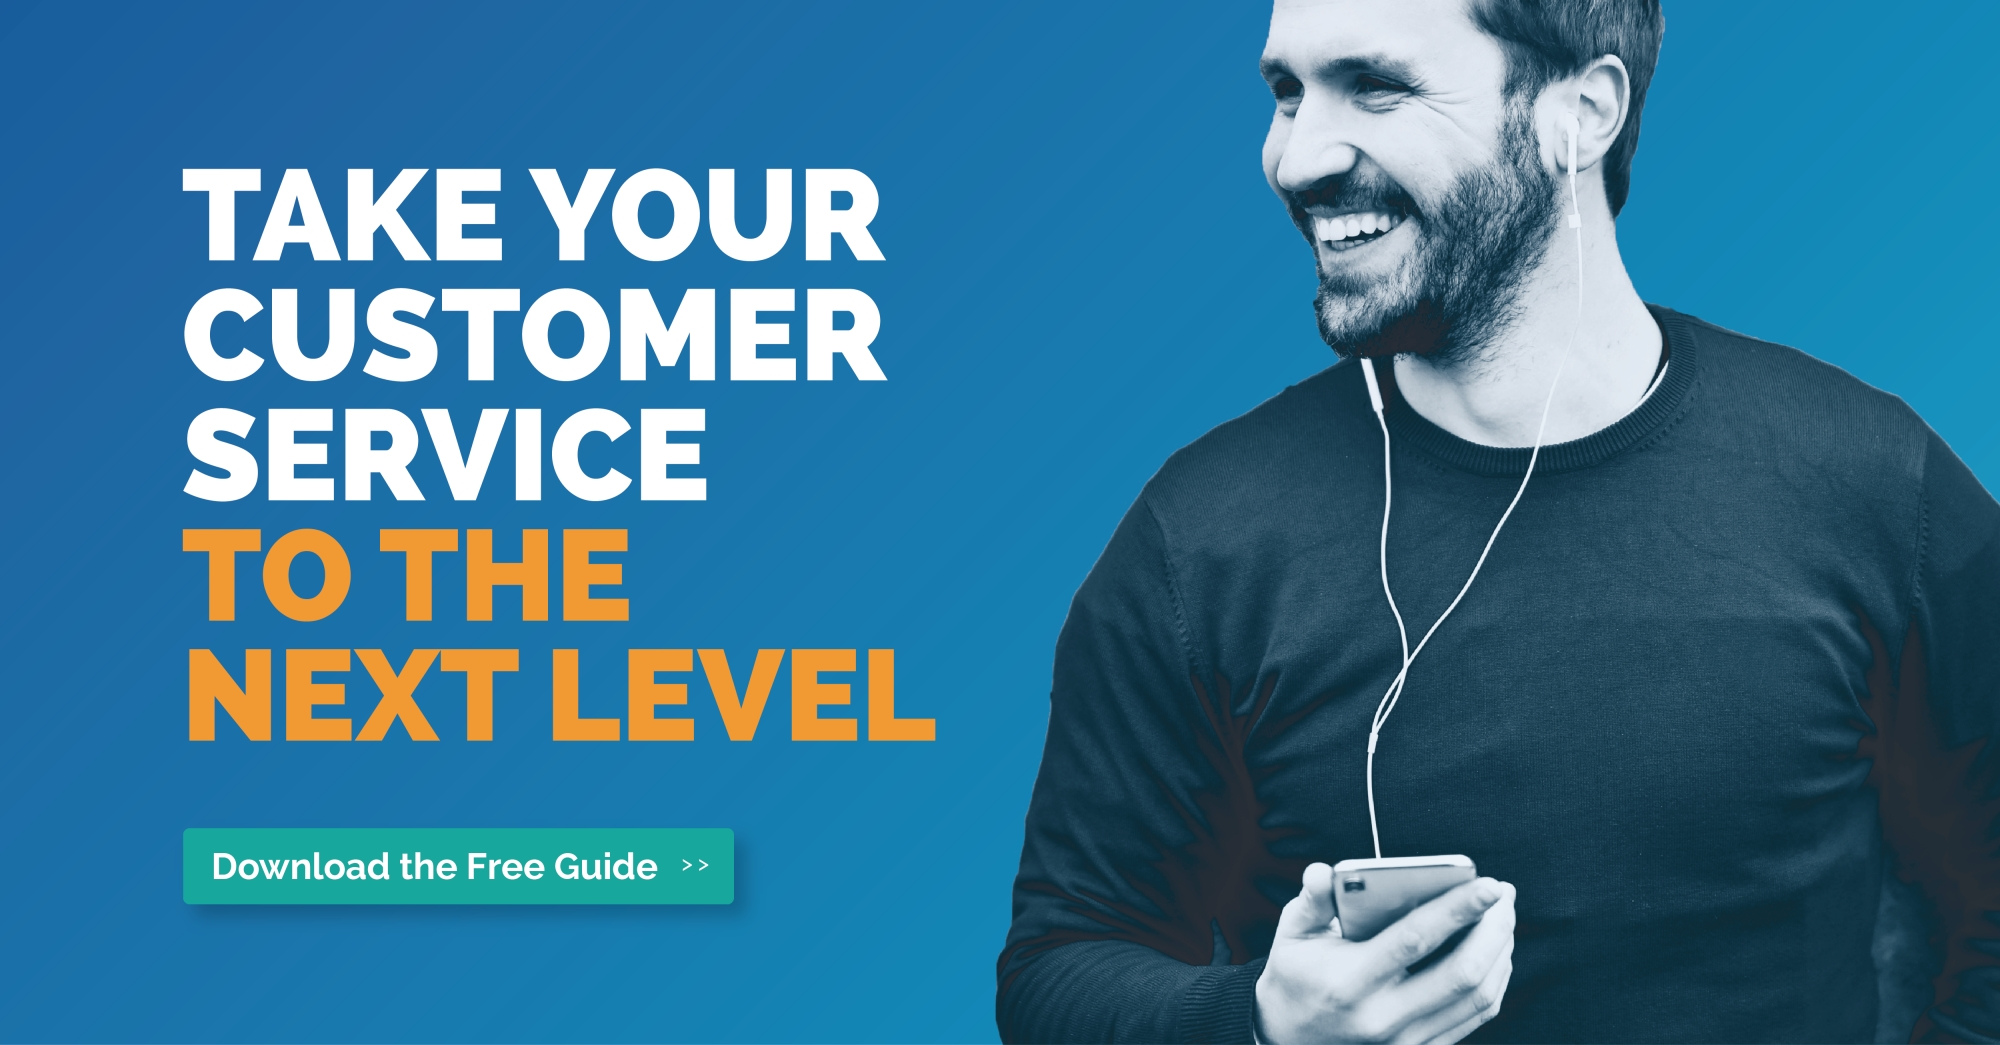 Customer Service Guide for Smartphones and Wearables